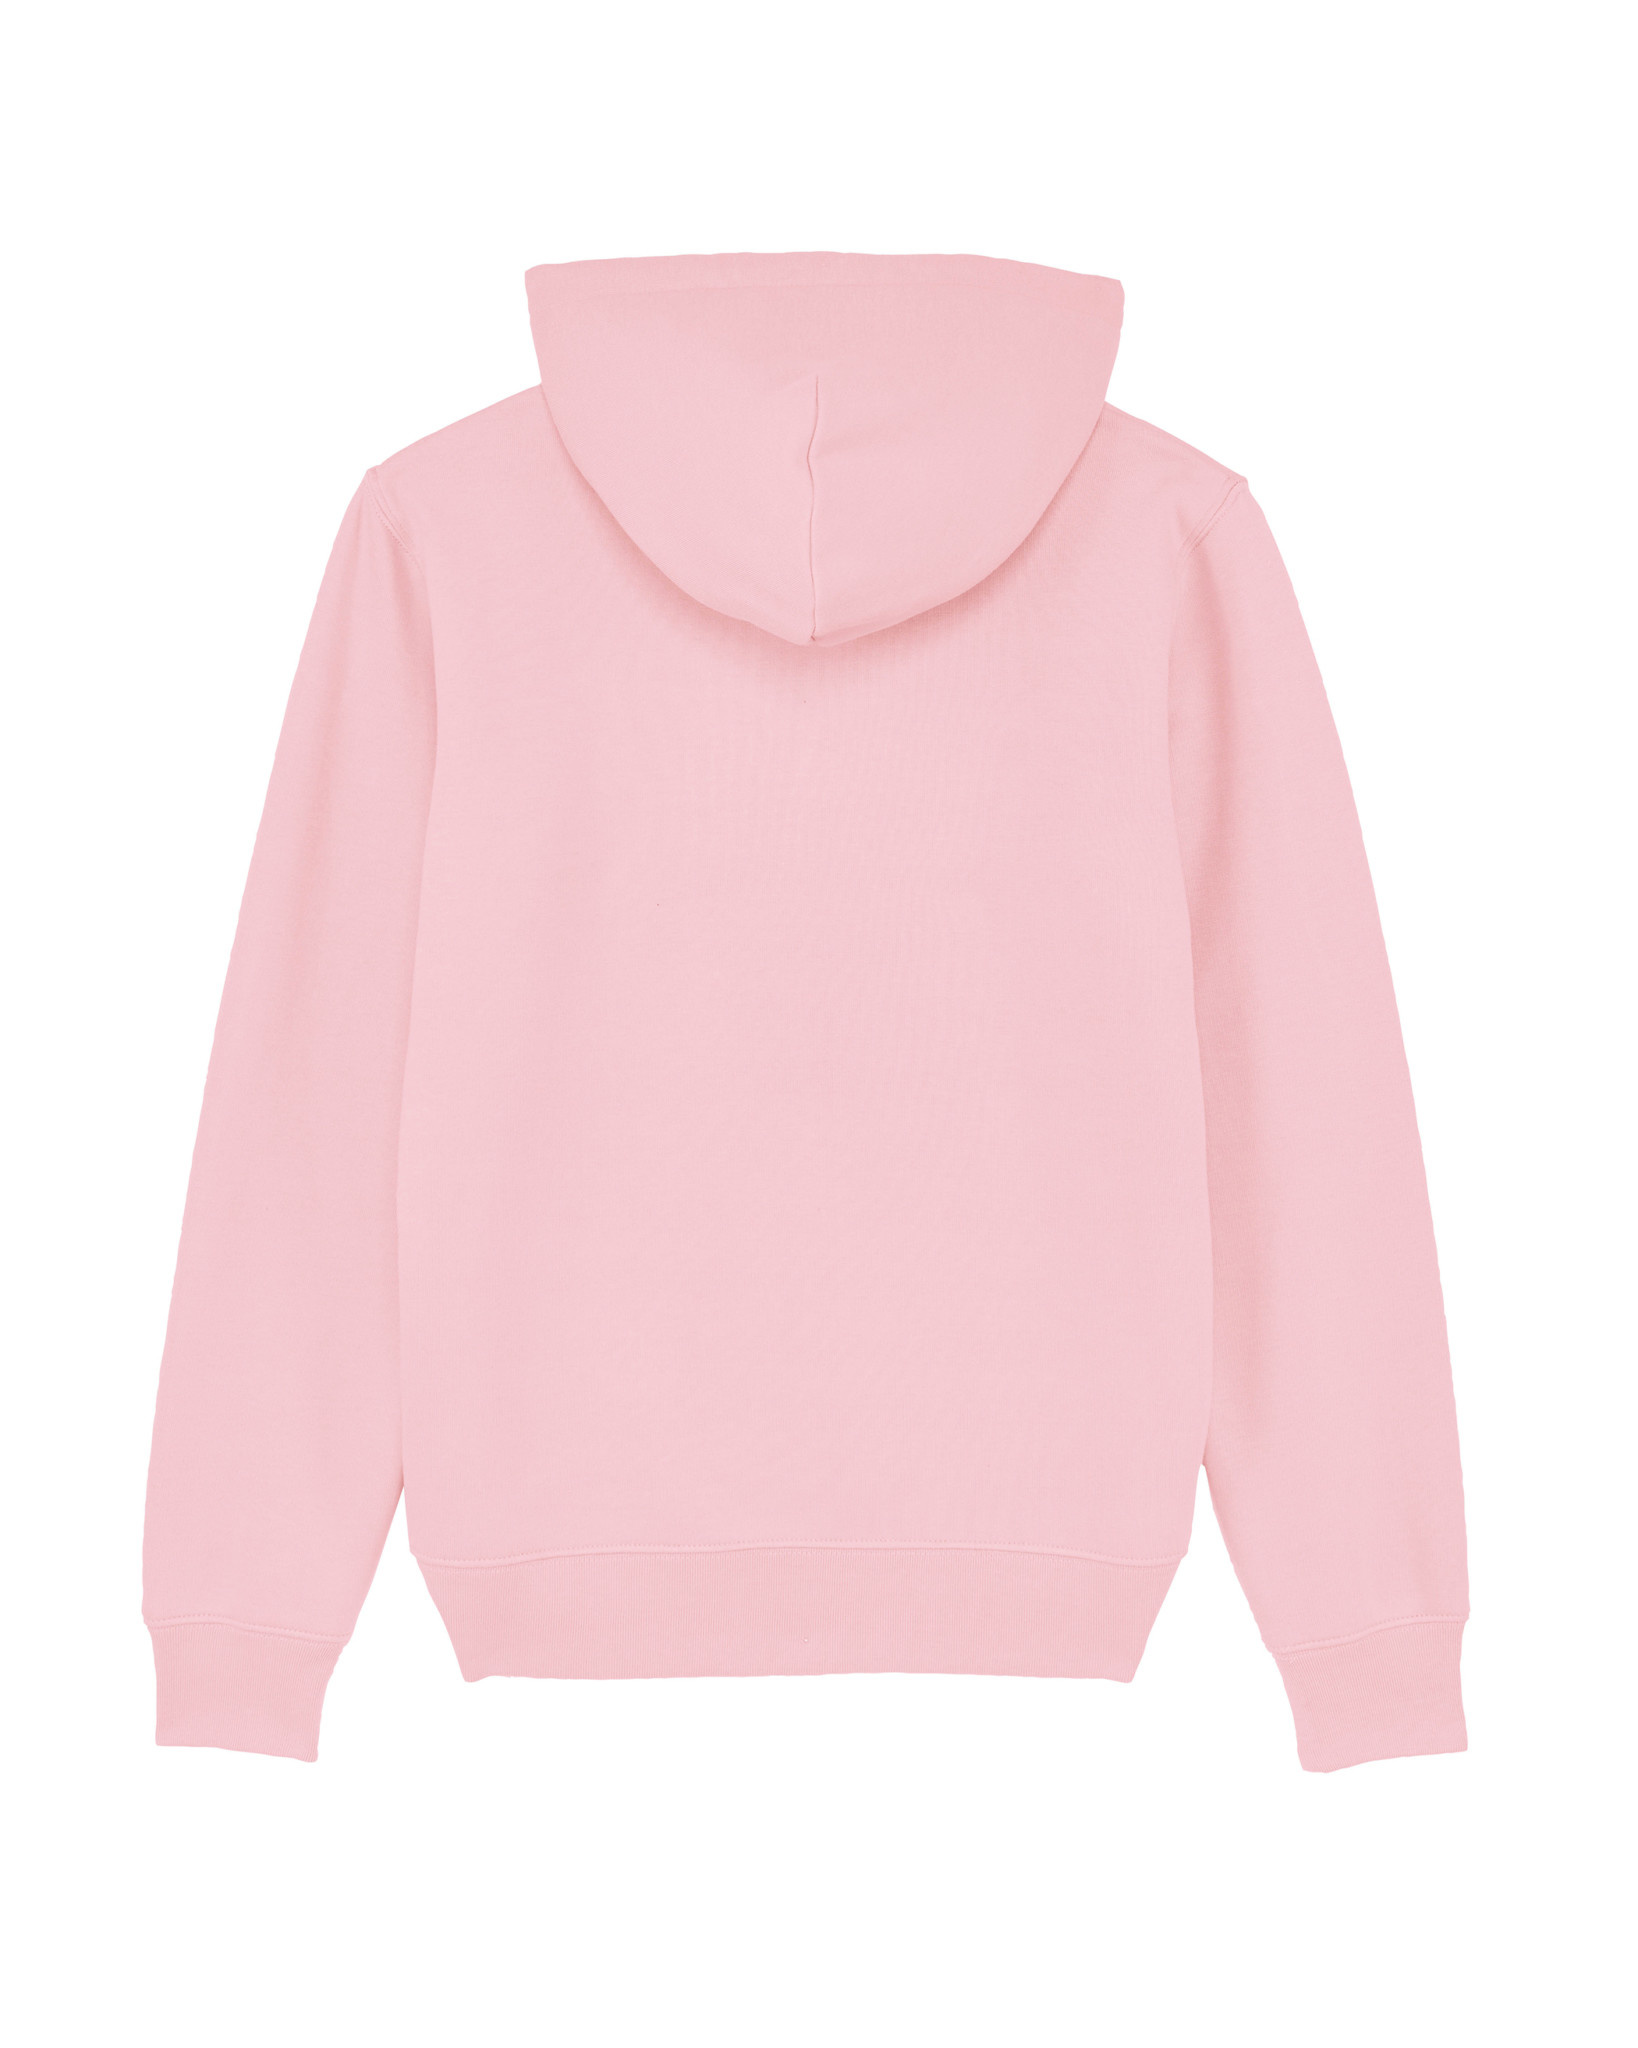 GOAT Apperal Goat Avery Unisex Hooded Sweat Pink